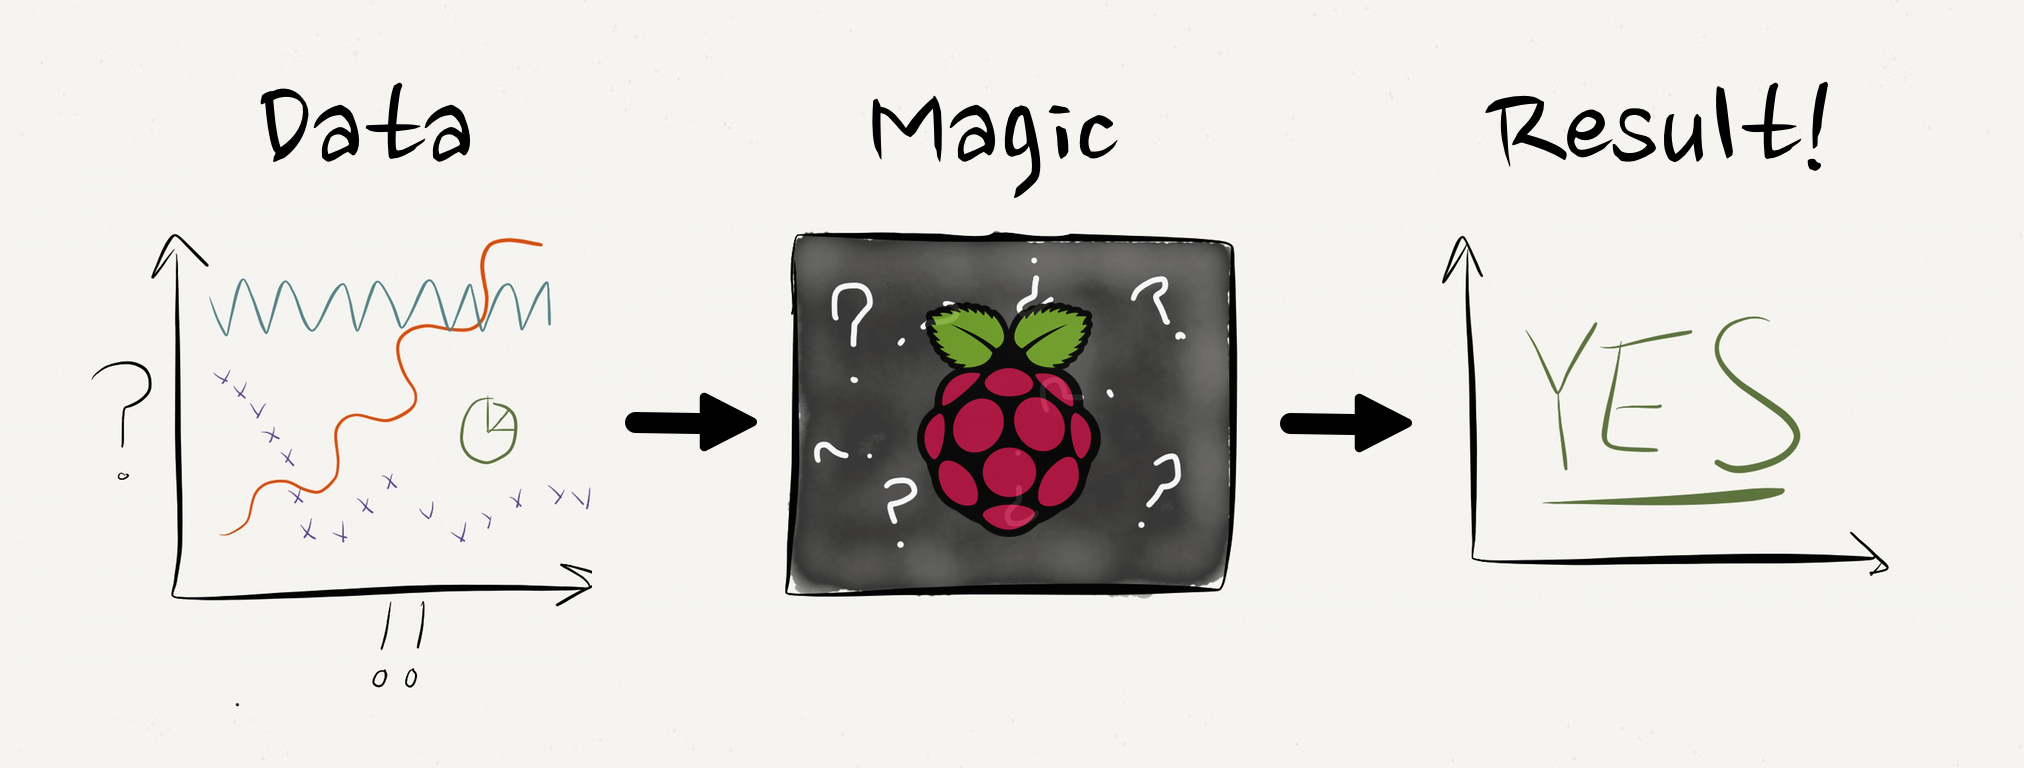 I'm not saying I expect the MSc student to do magic but I would award bonus points if they make a rabbit pop of the RaspberryPi.